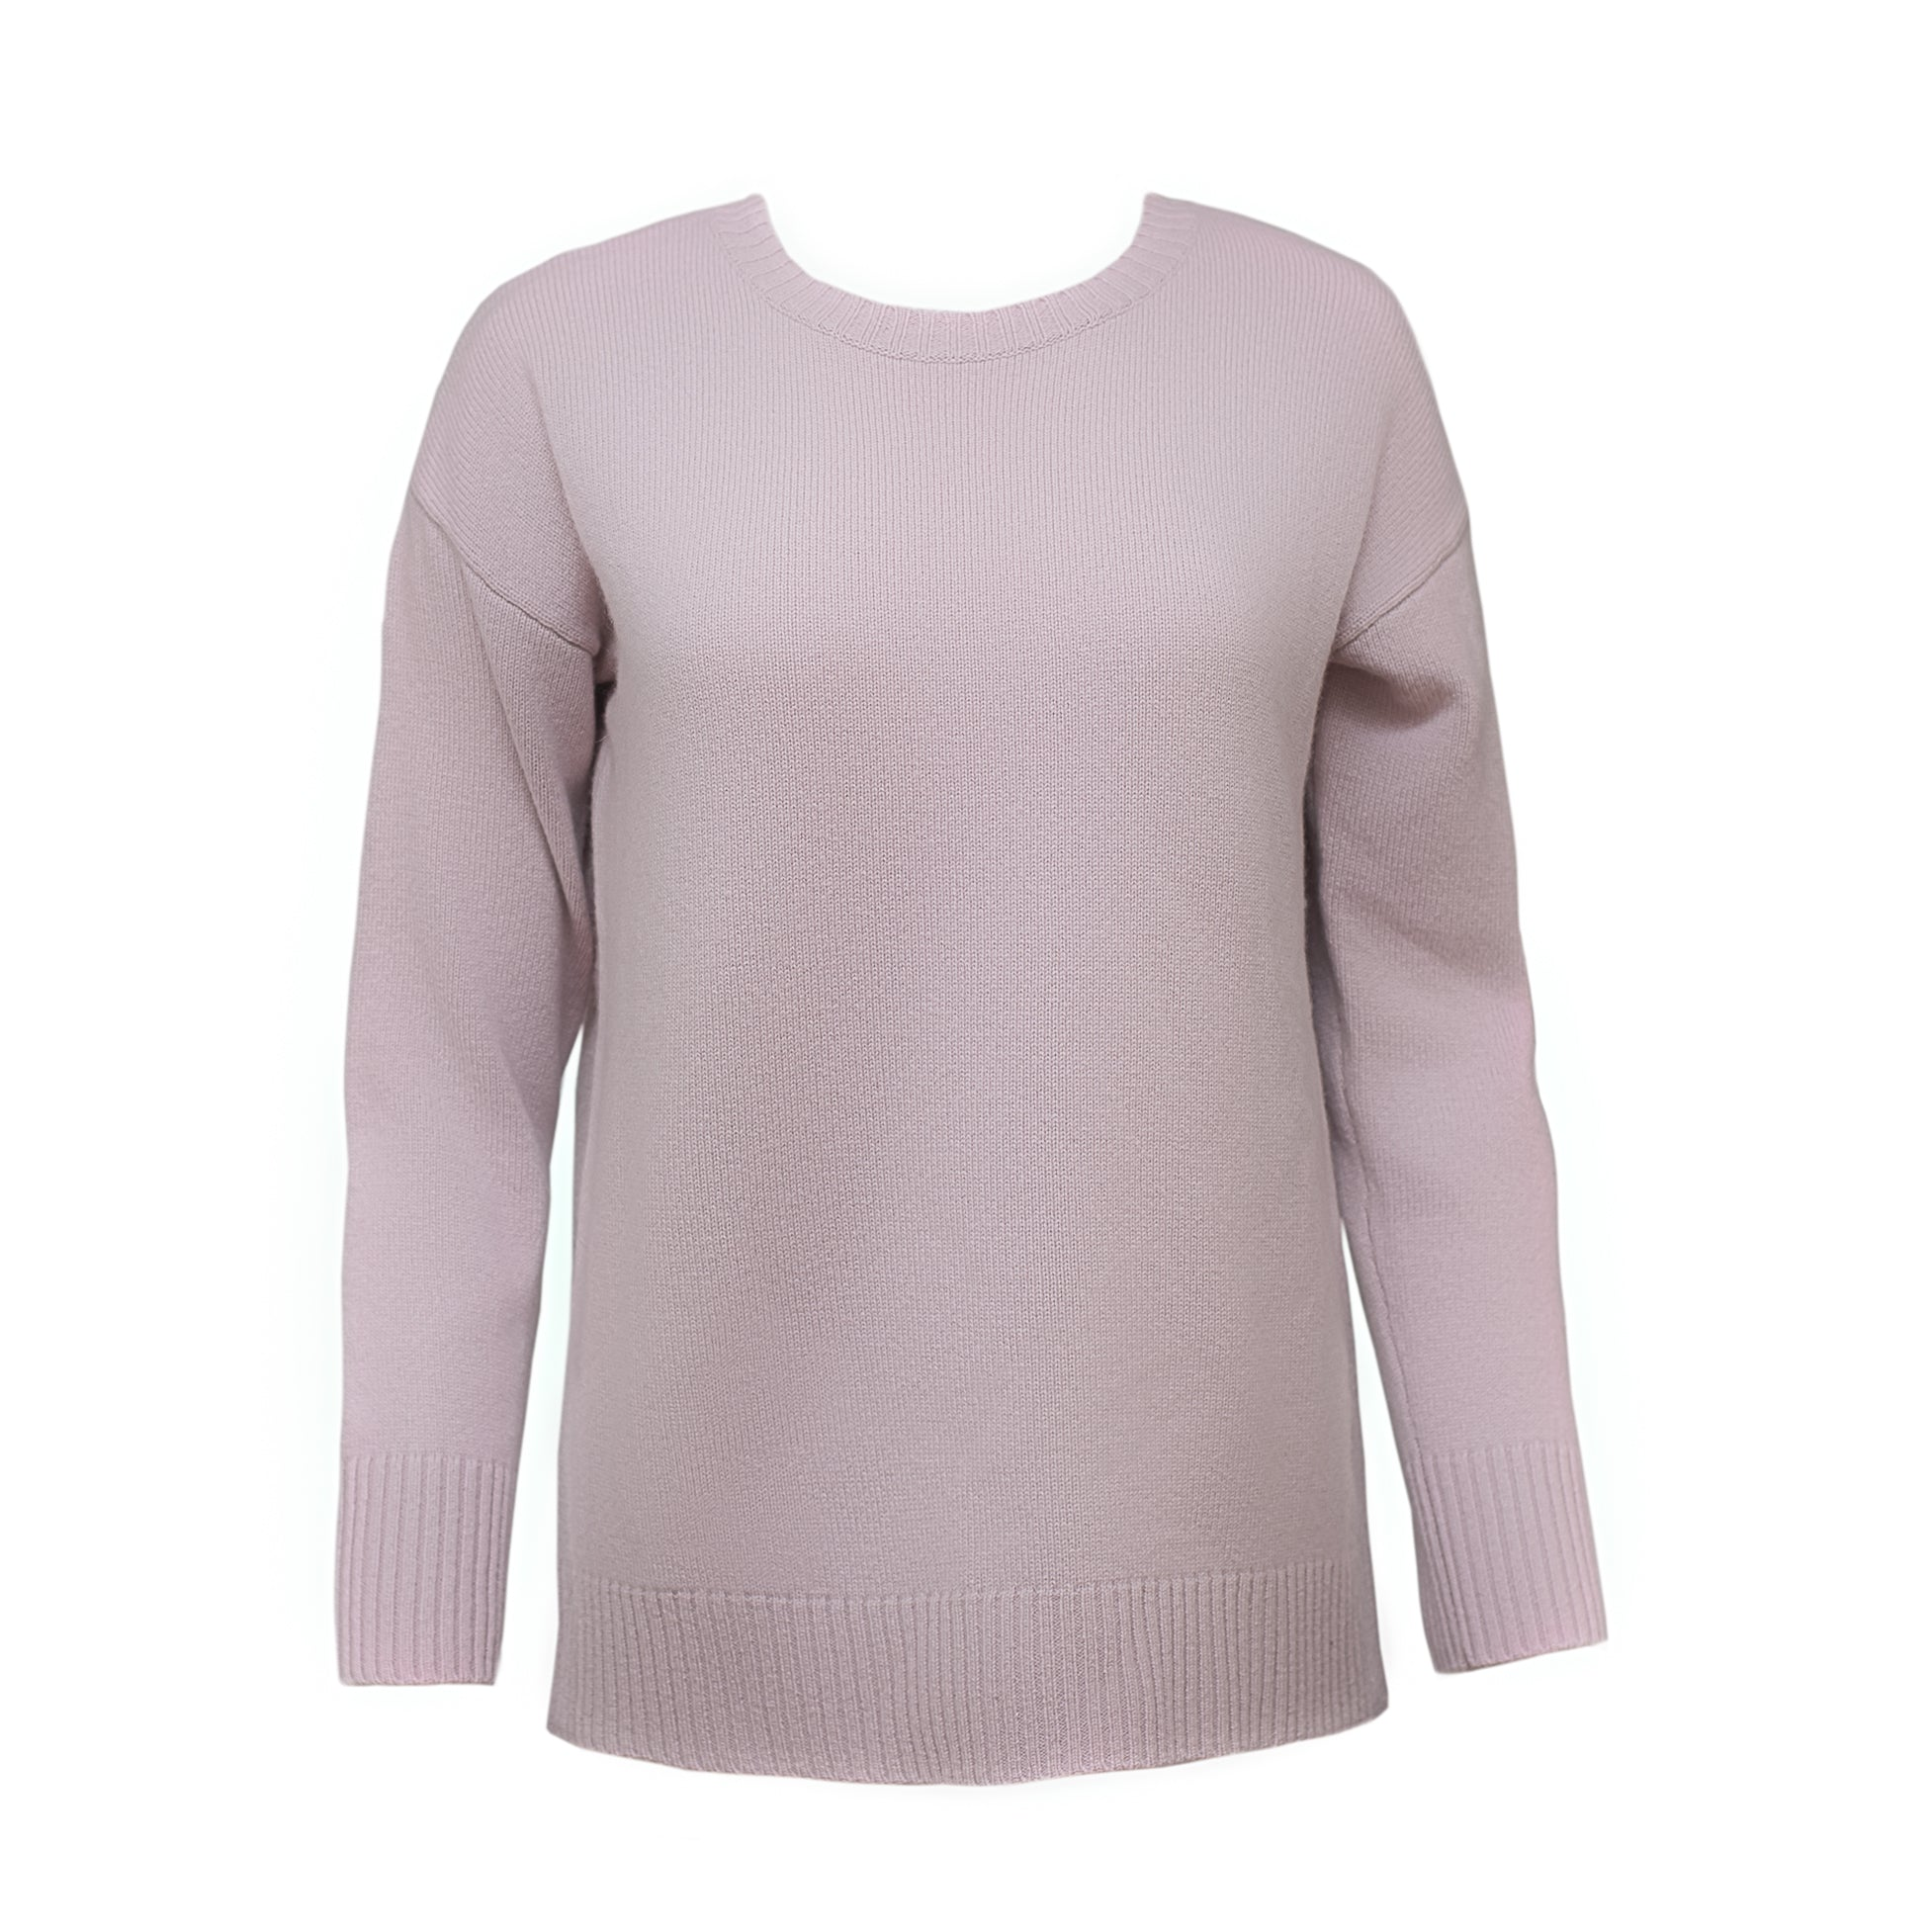 The Diana Cashmere sweater in lavender blush